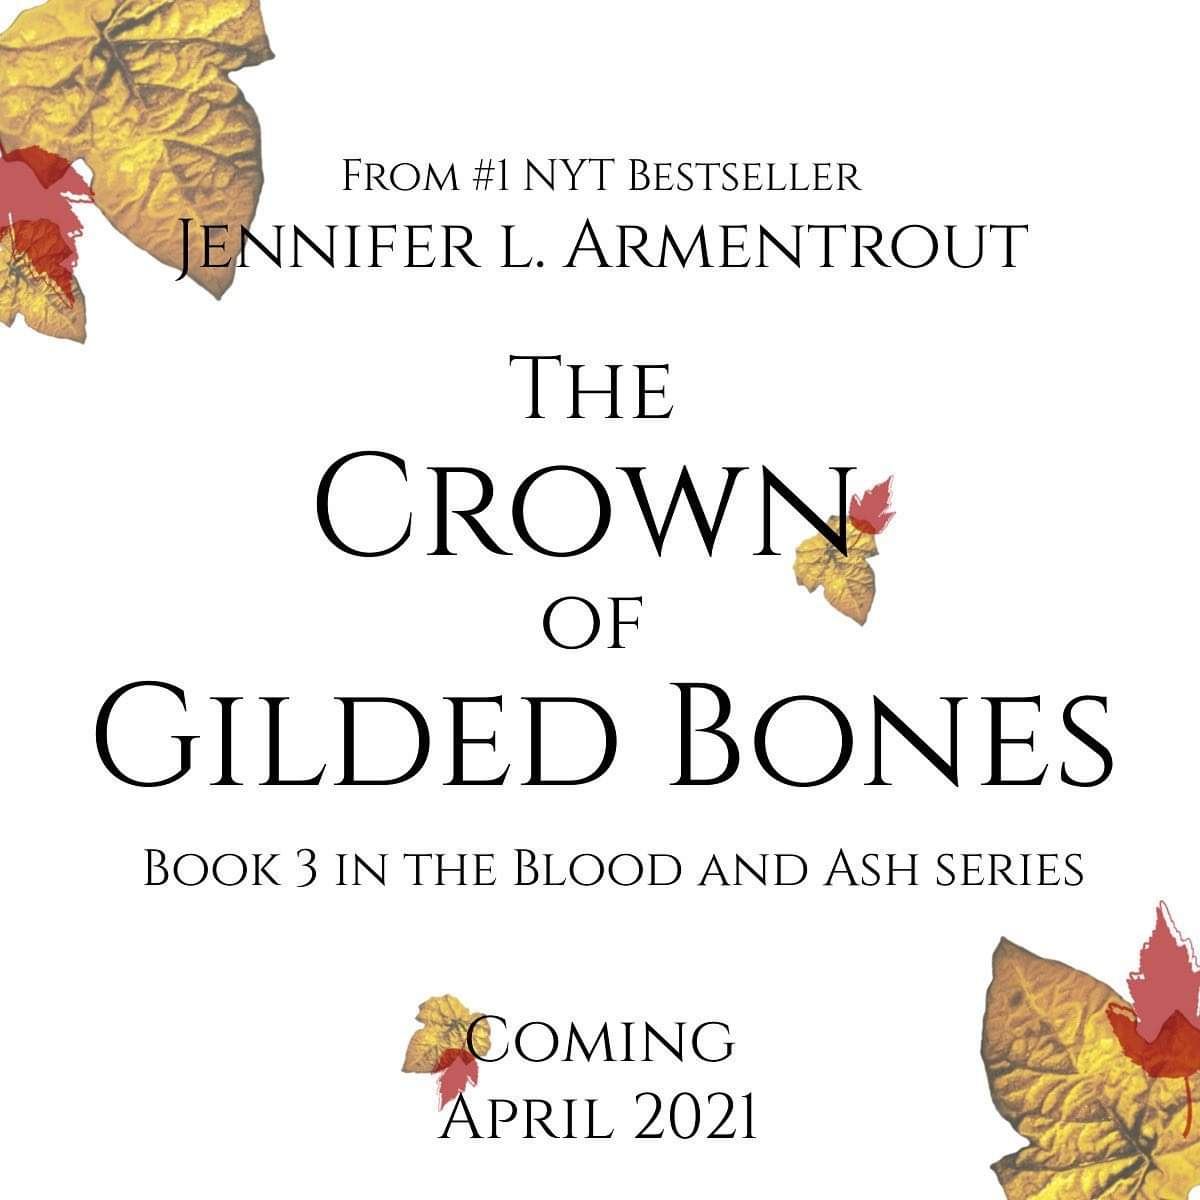 The crown of gilded bones preview cover